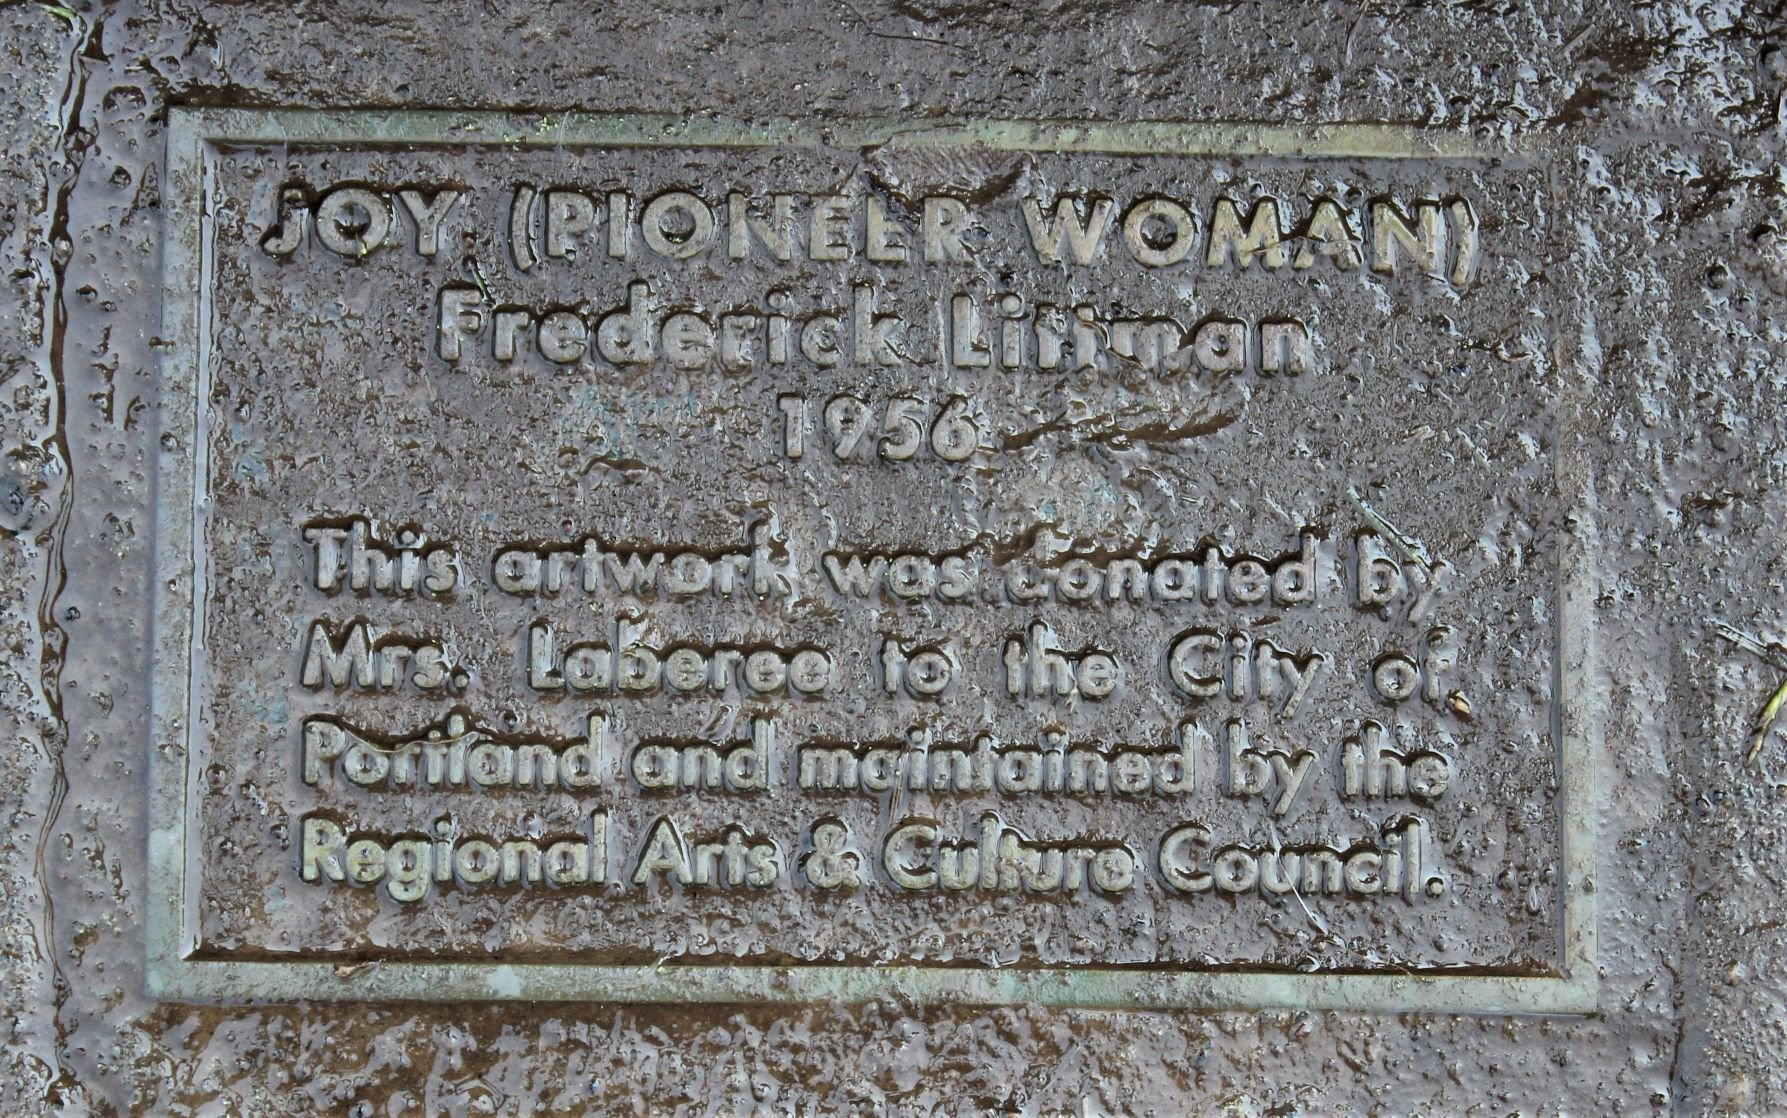 Joy (Pioneer Woman) plaque at base of fountain. Photo by Cynthia Prescott.